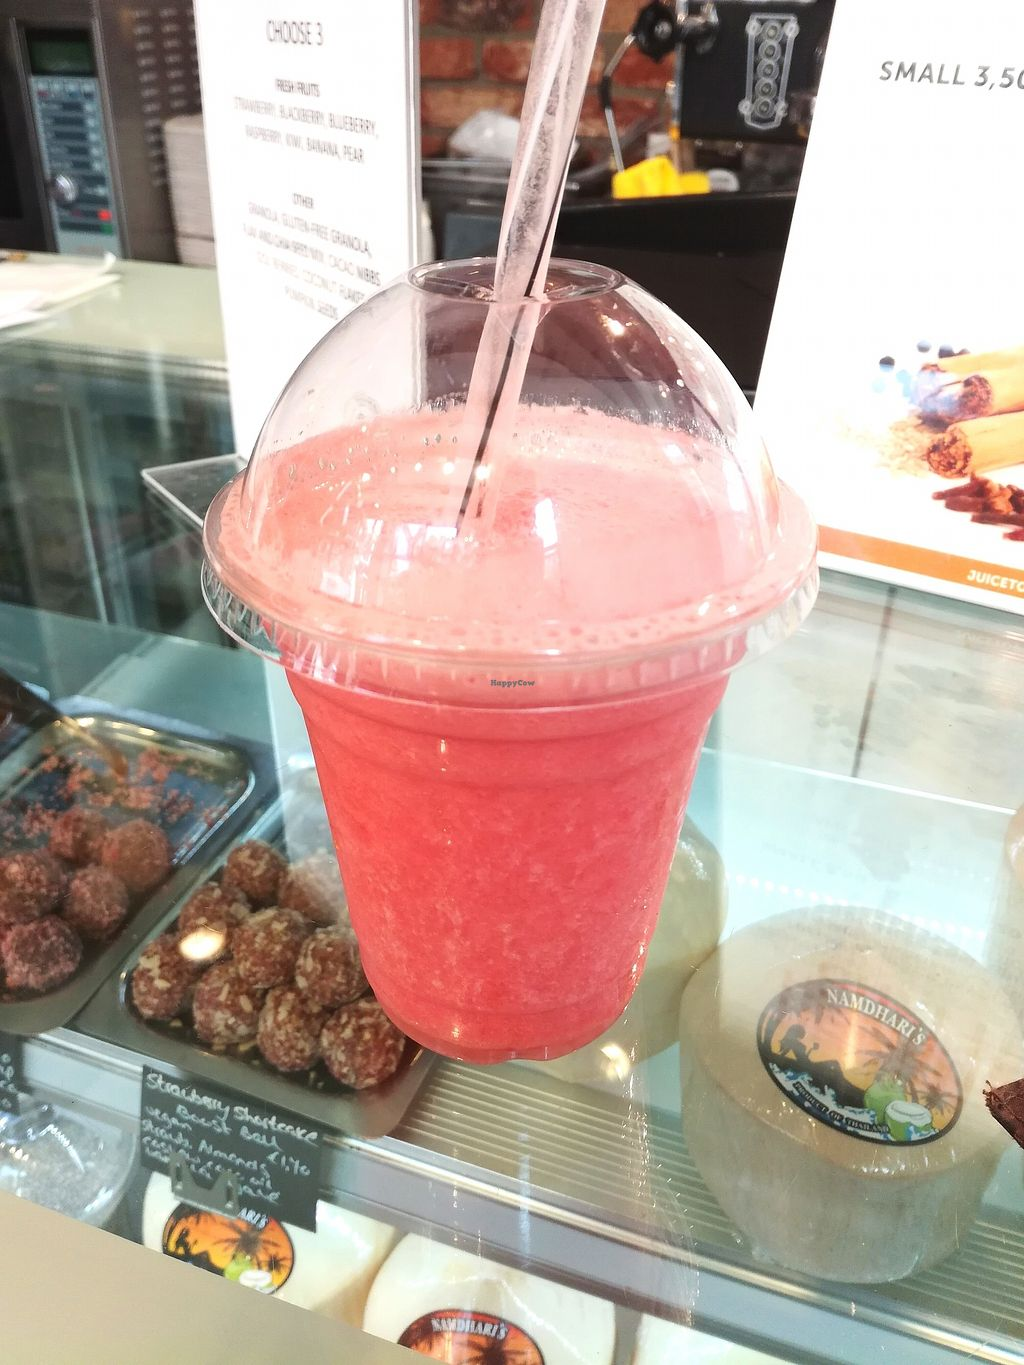 "Photo of Coco's Corner Shop  by <a href=""/members/profile/happyowl"">happyowl</a> <br/>Fresh smoothie with watermelon and pineapple <br/> September 2, 2017  - <a href='/contact/abuse/image/60408/300198'>Report</a>"